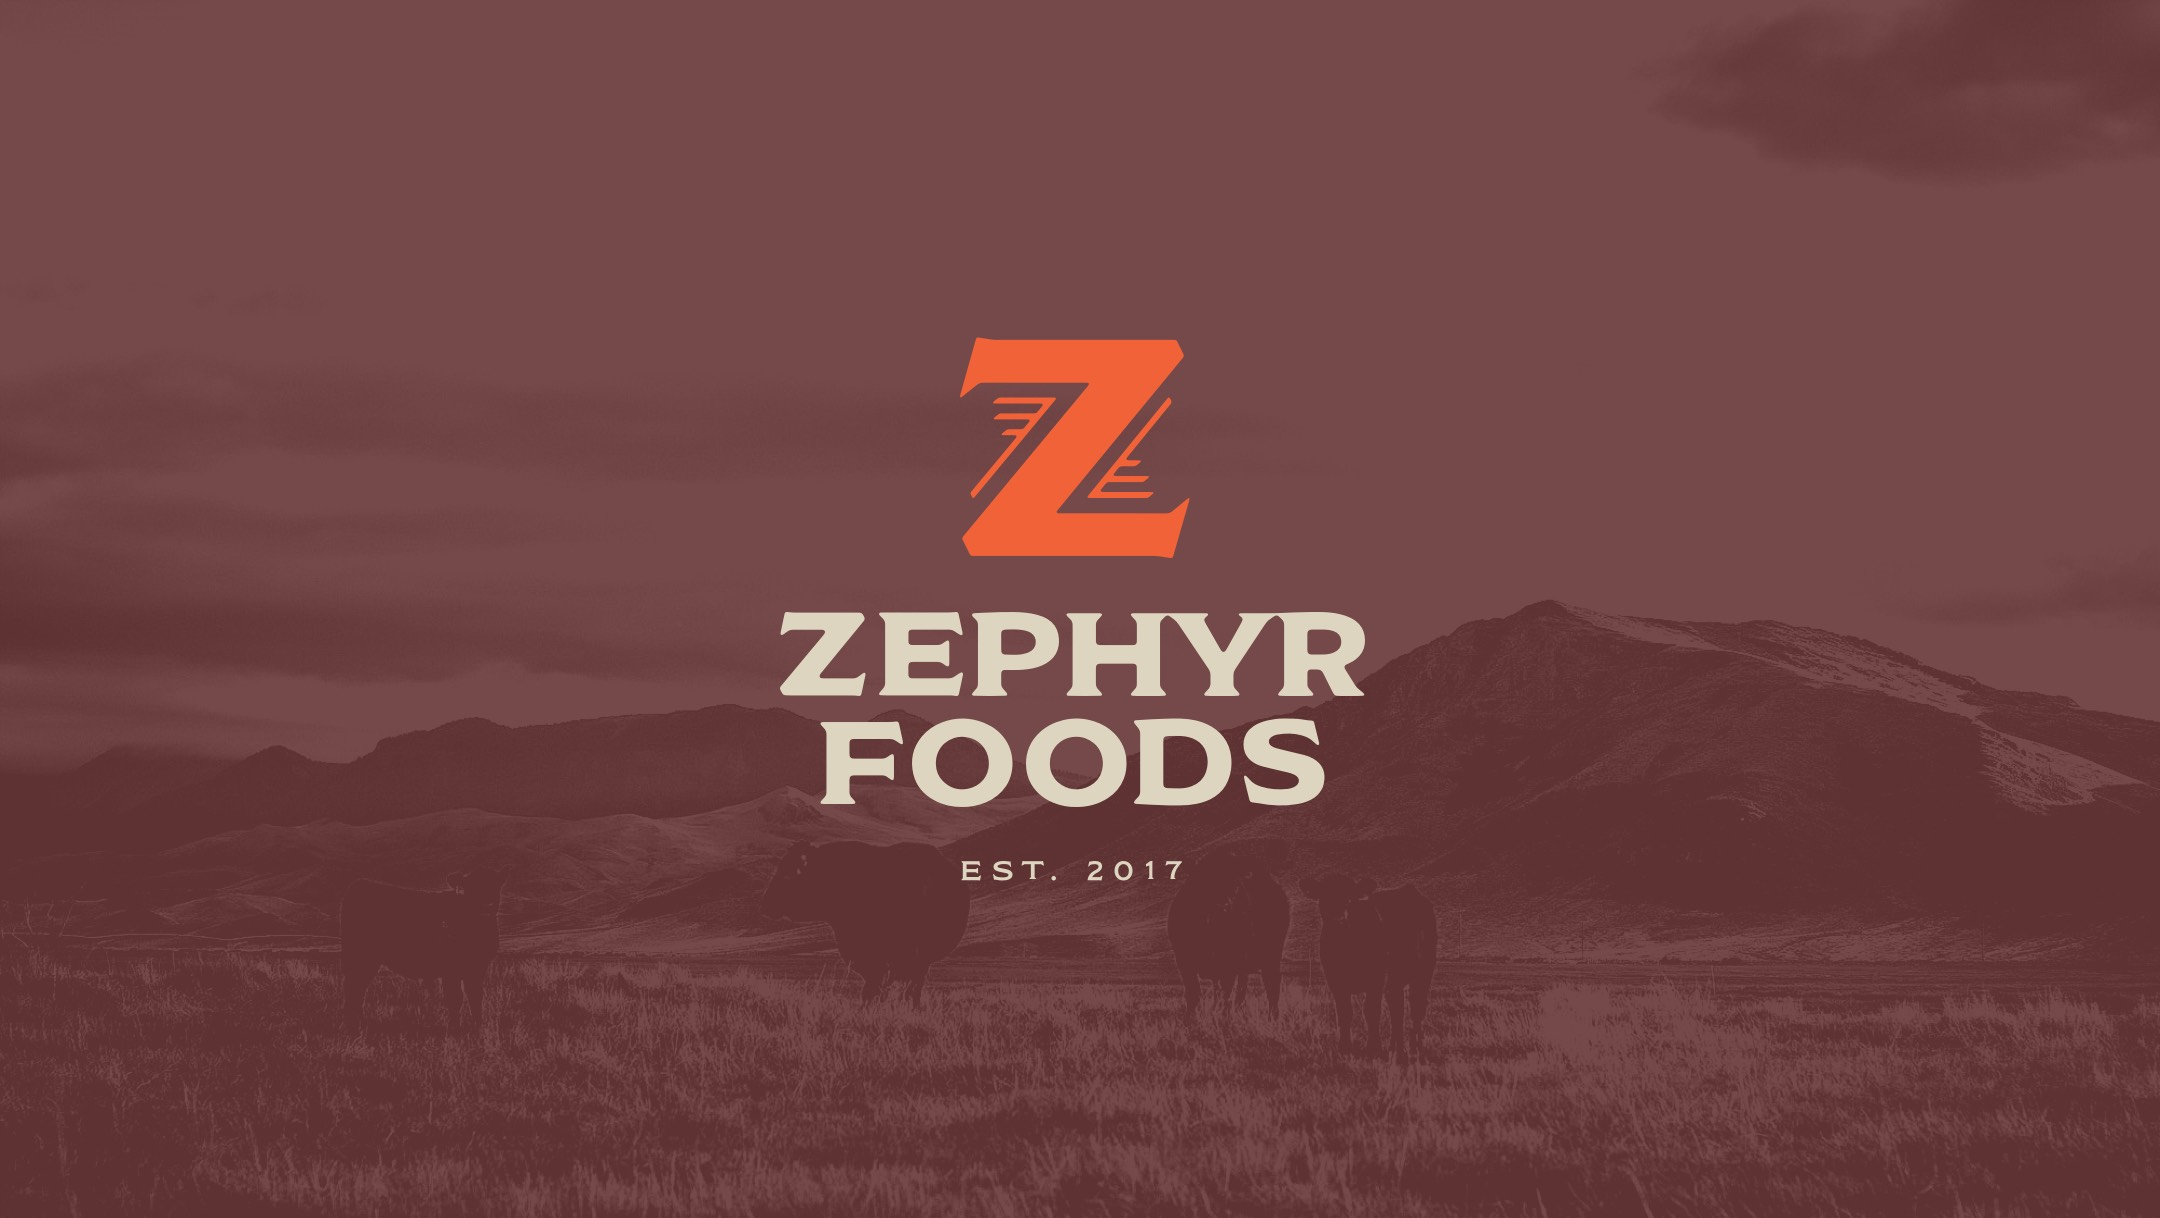 zephyr foods logo with background